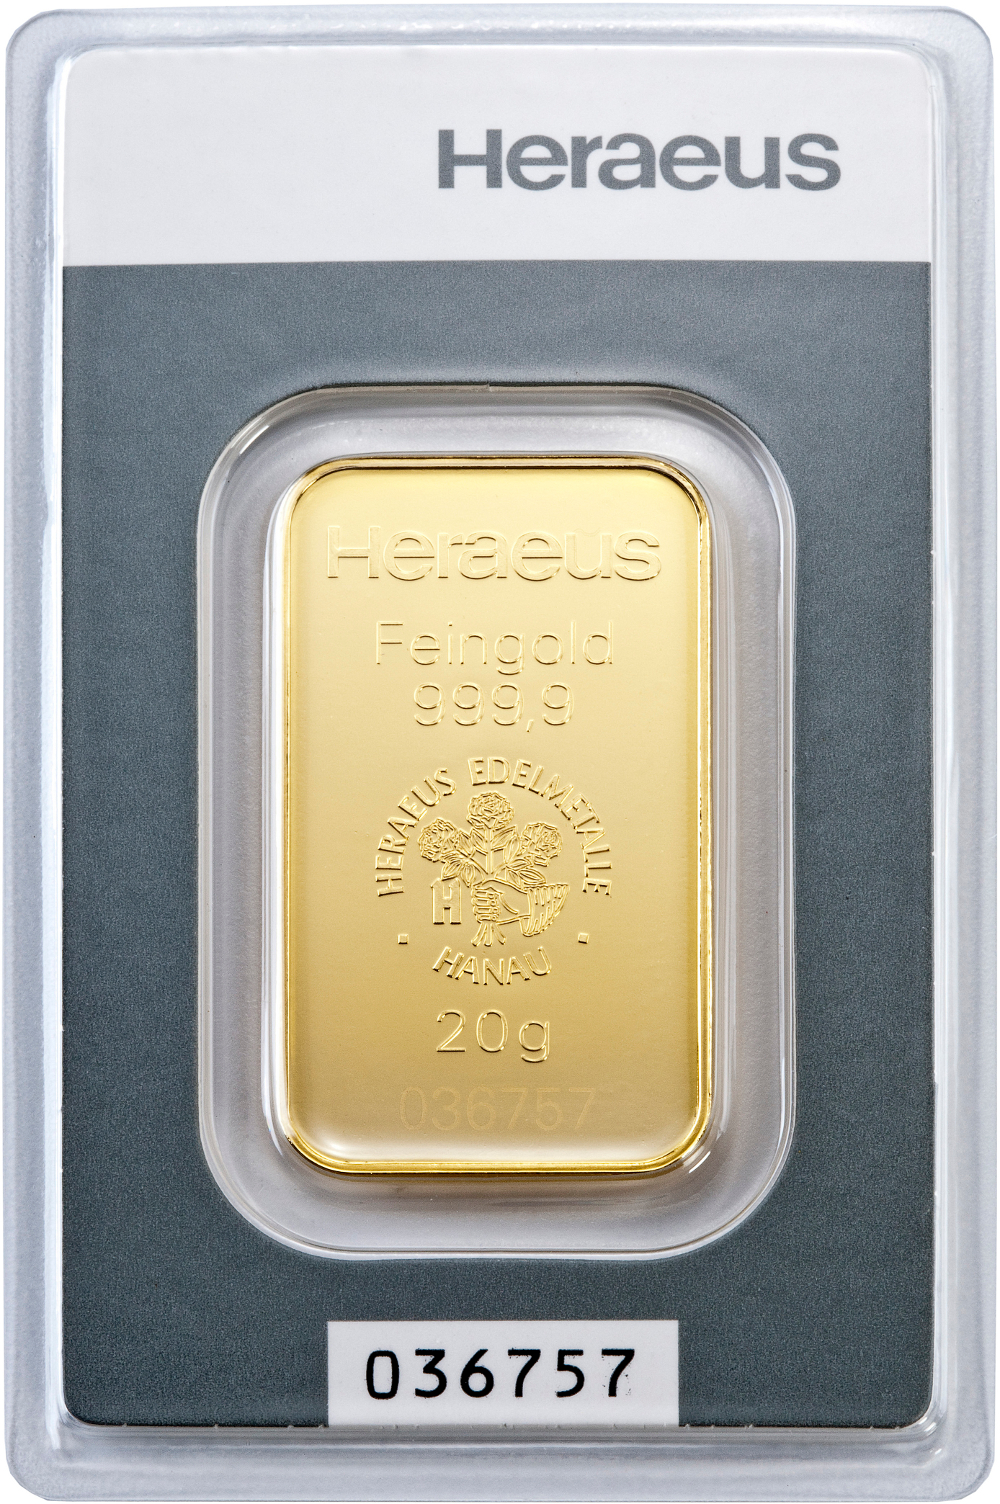 Heraeus 20g Gold Bars Bullionbypost From 163 668